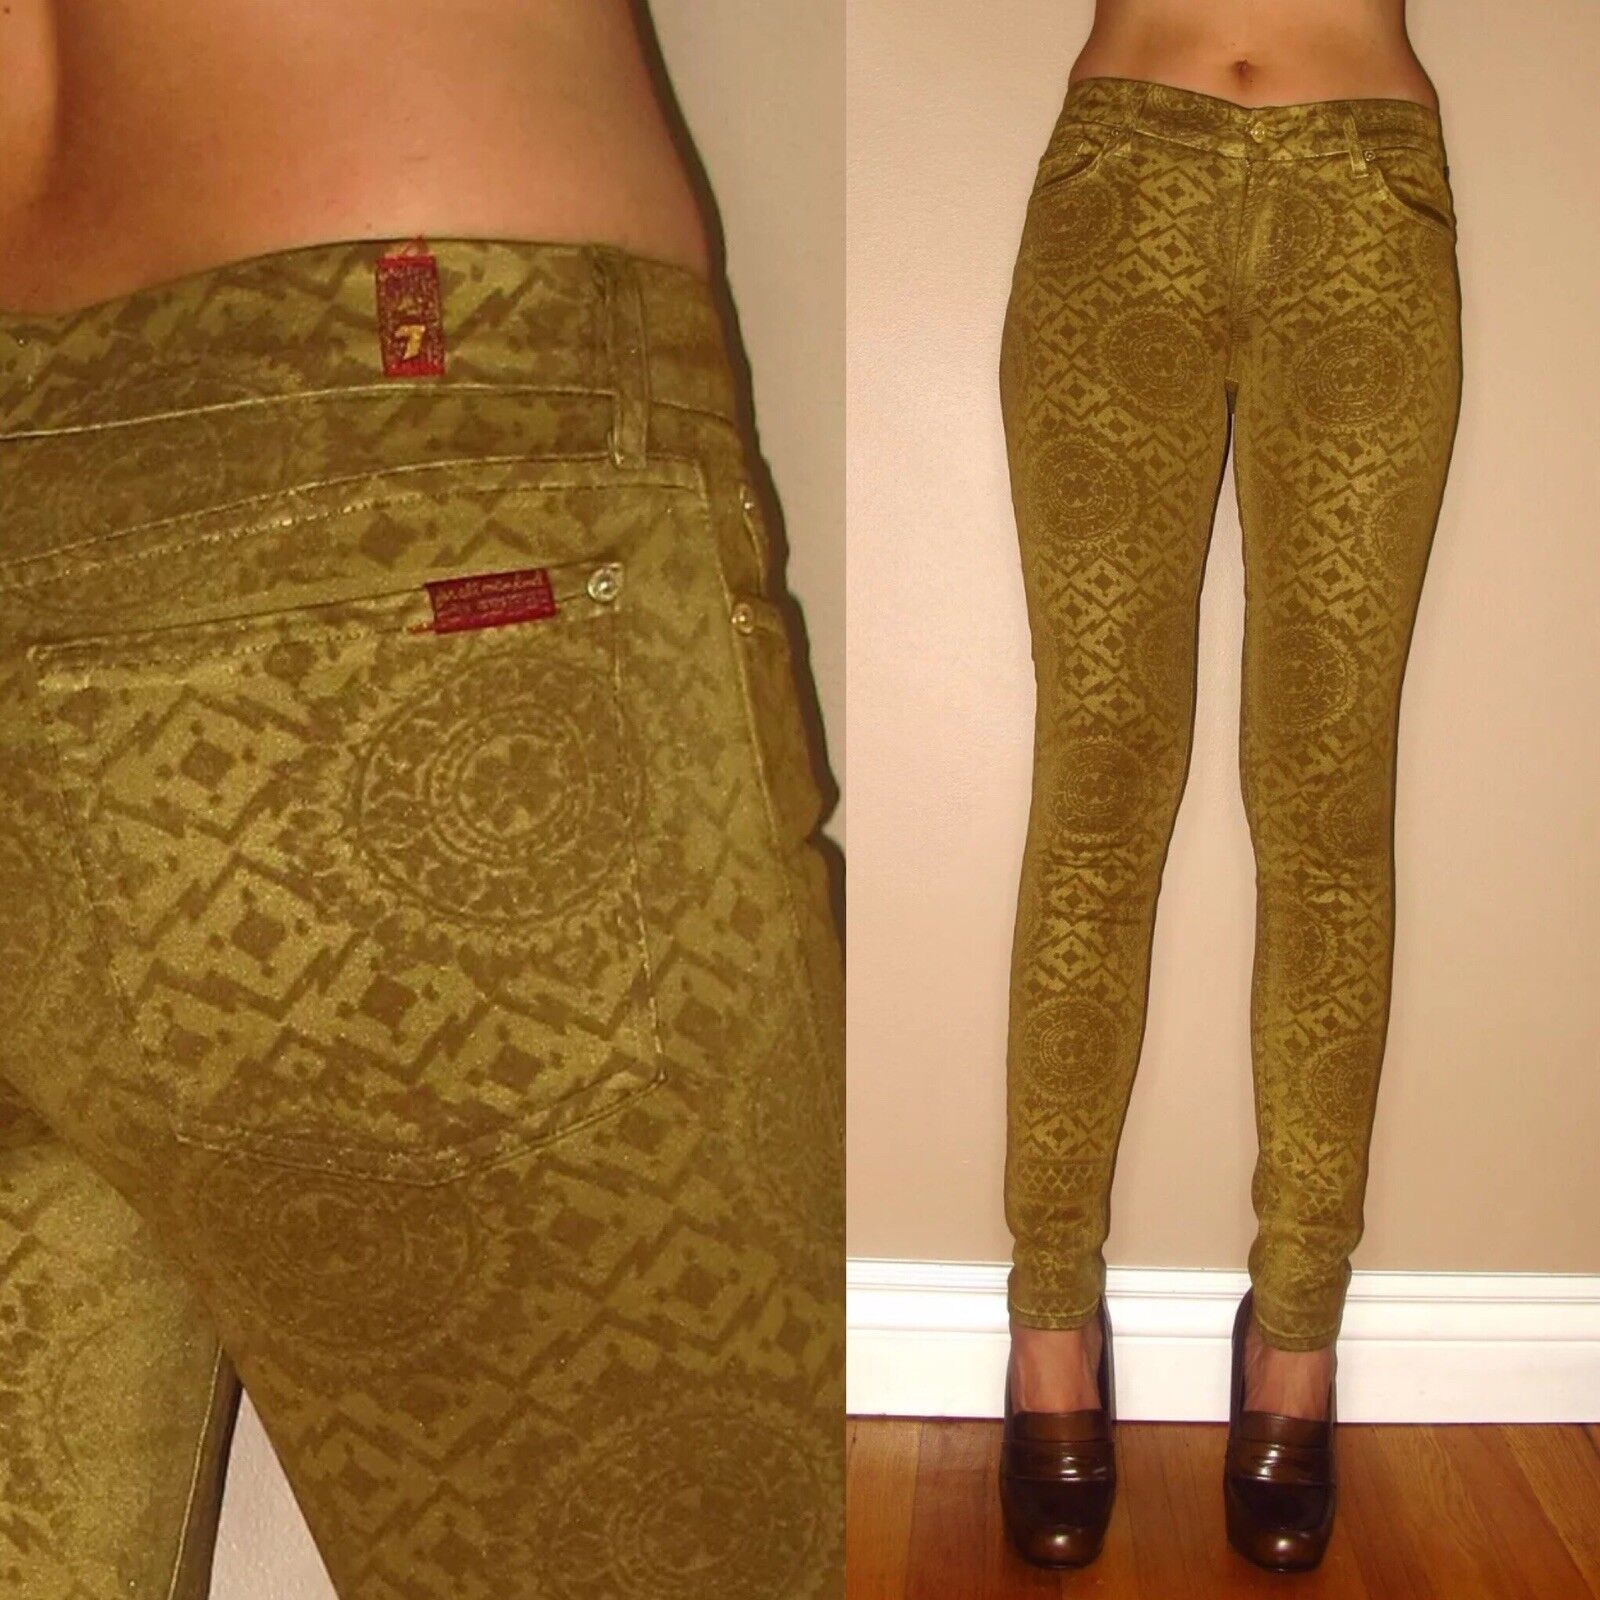 198 7 For All Mankind Skinny High Waist Jeans gold Waxed Leather-Look 24